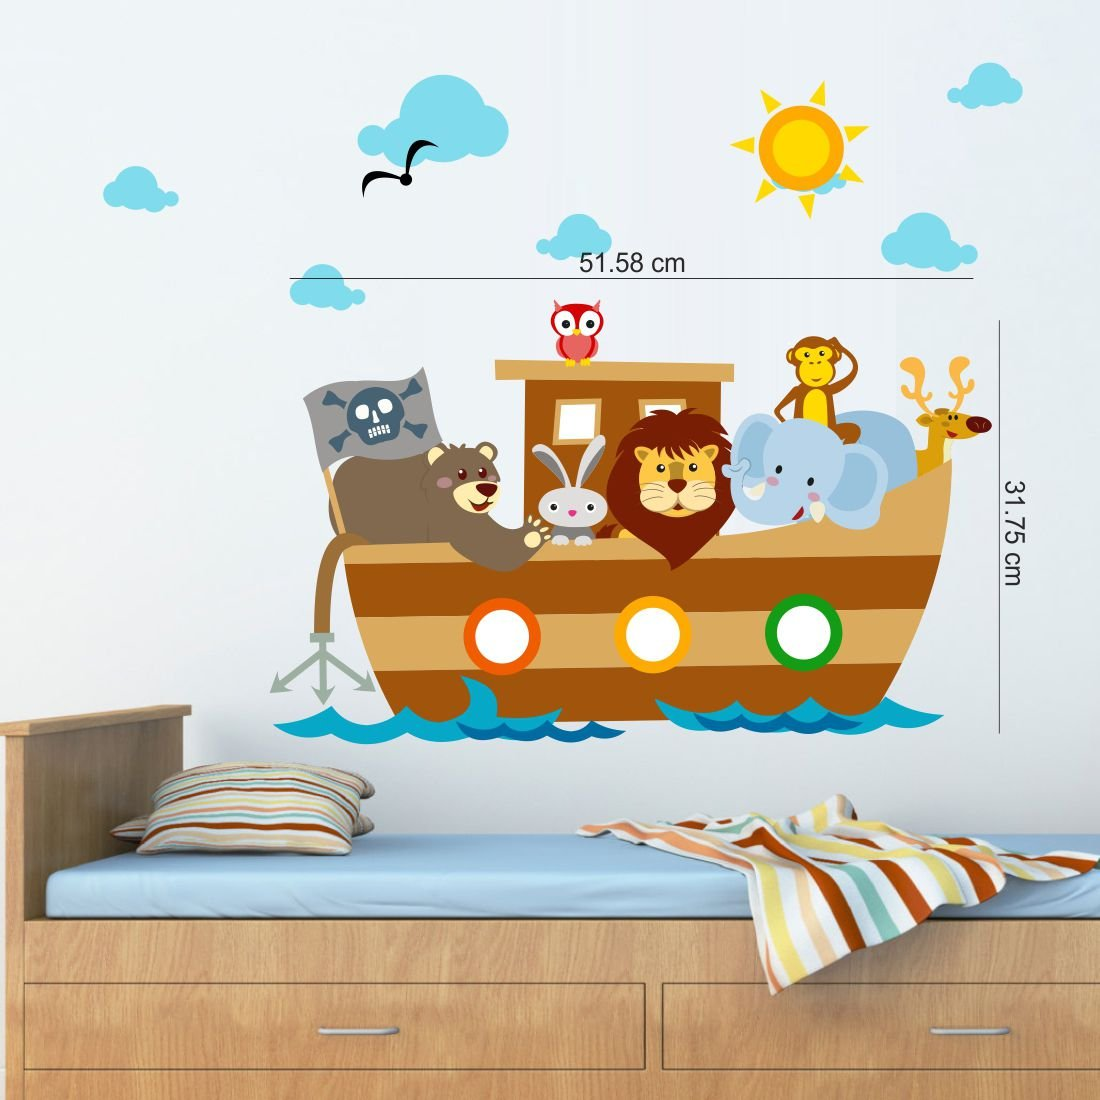 Buy asian paints wall ons noahs ark wall sticker pvc vinyl 001 buy asian paints wall ons noahs ark wall sticker pvc vinyl 001 cm x 3048 cm x 762 cm online at low prices in india amazon amipublicfo Gallery